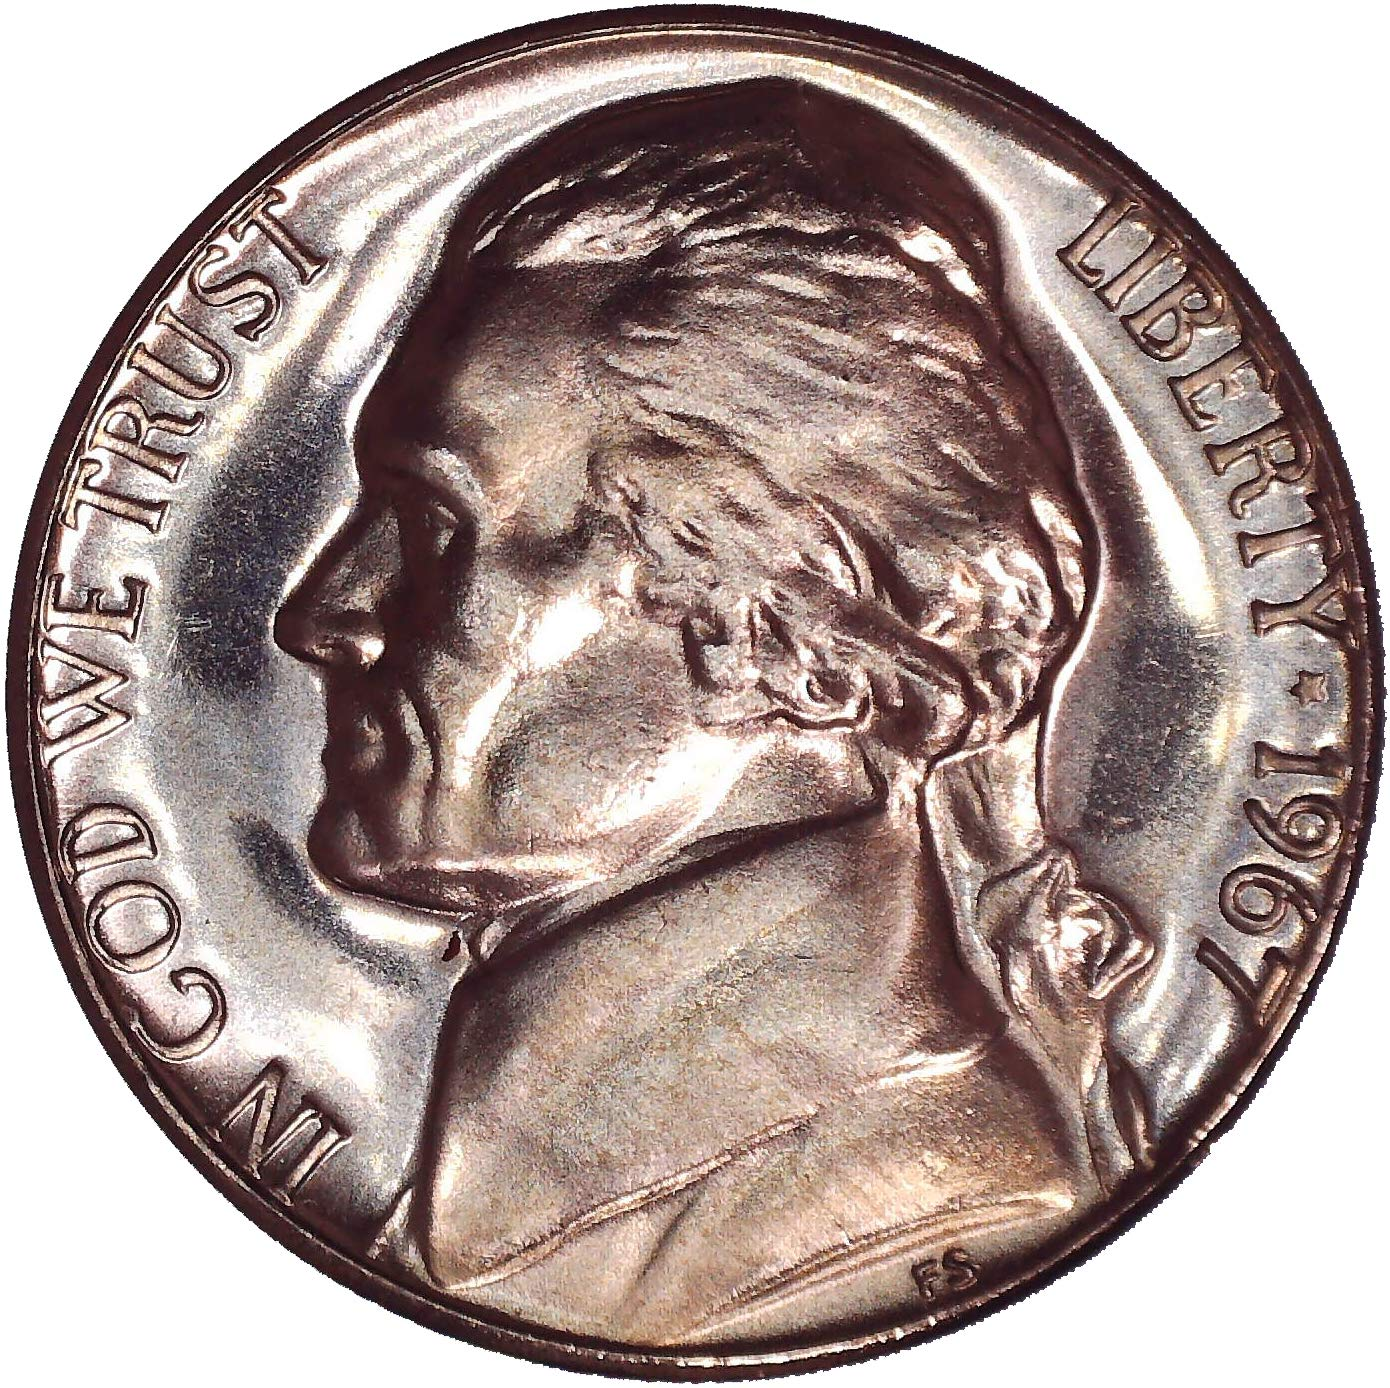 1967 SMS Jefferson Nickel-Special Mint Set Coin